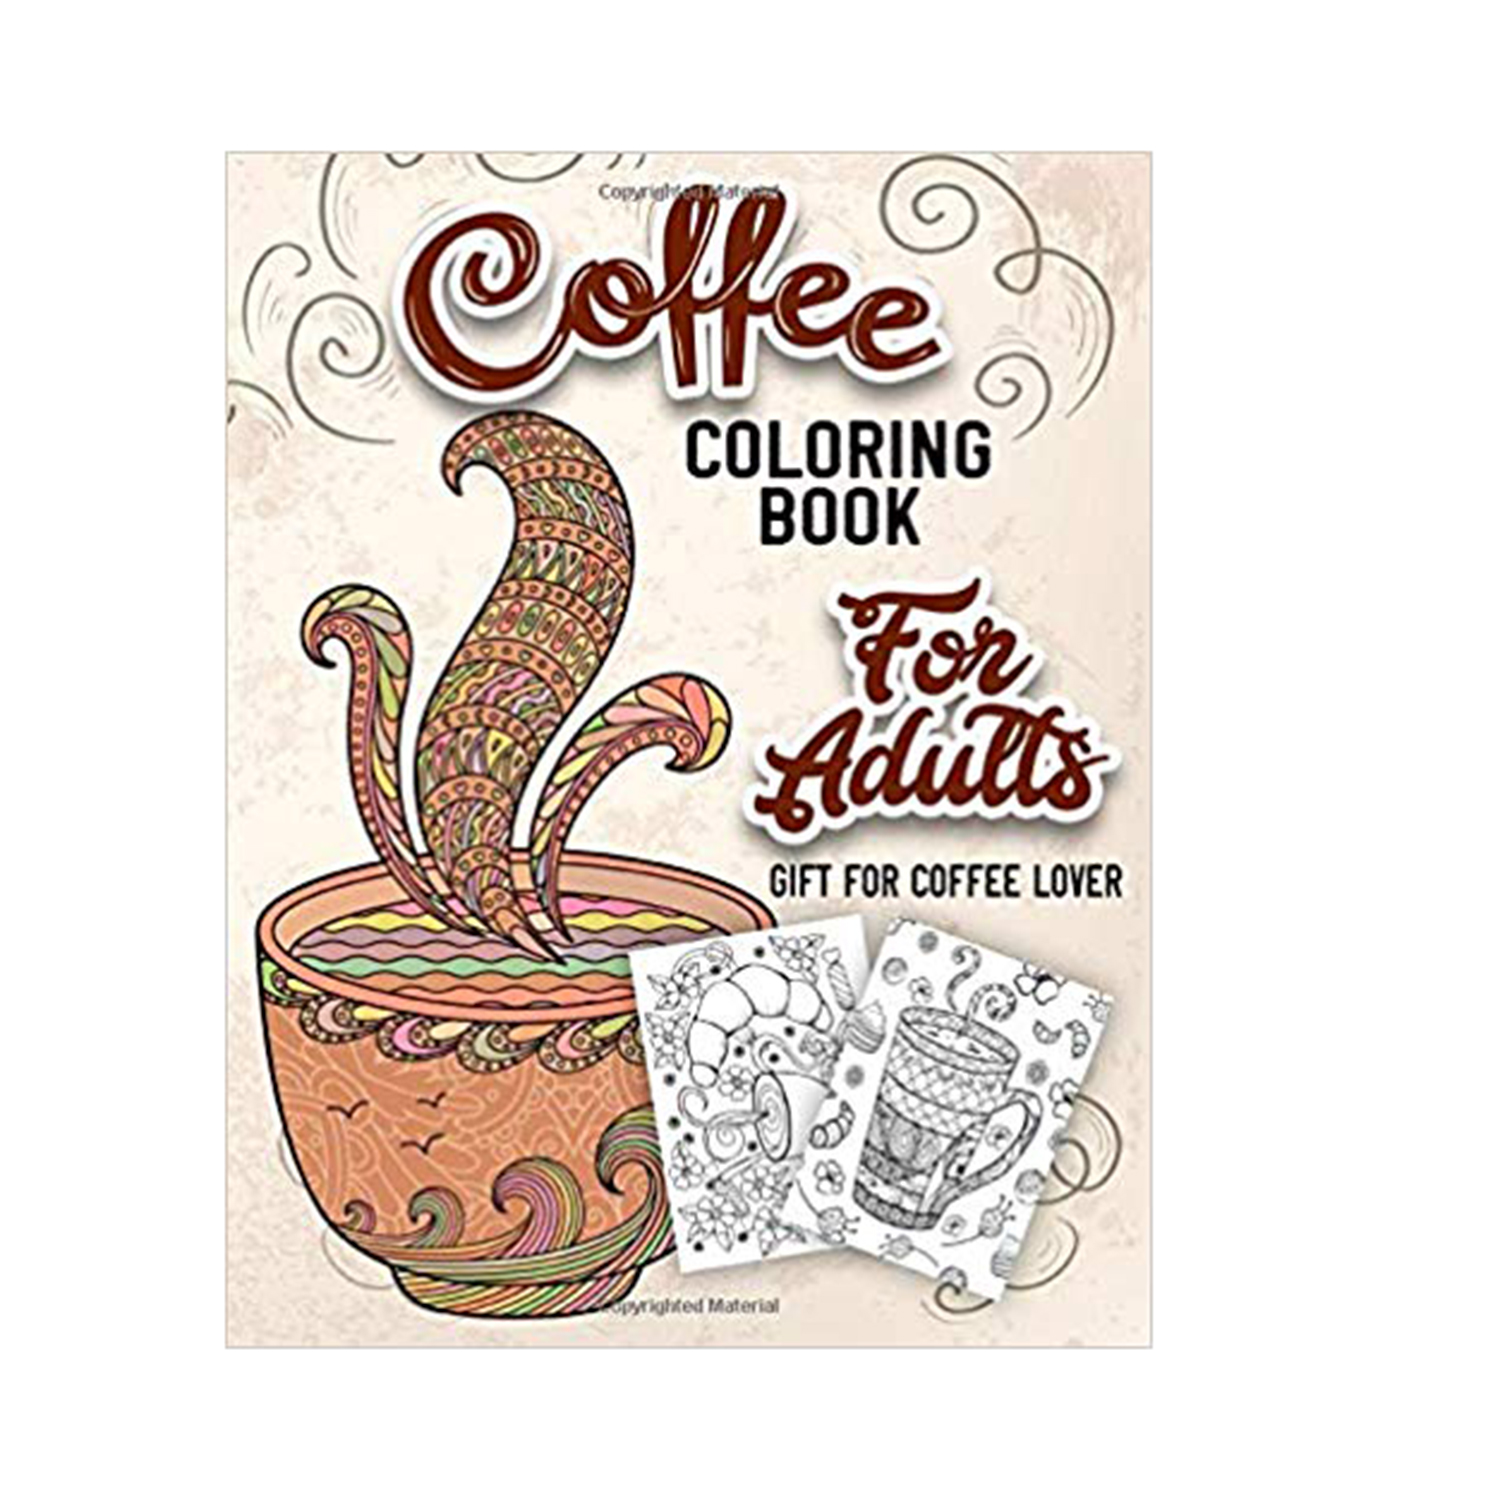 Coffee Coloring Book for Adults: An Adult Coloring Book